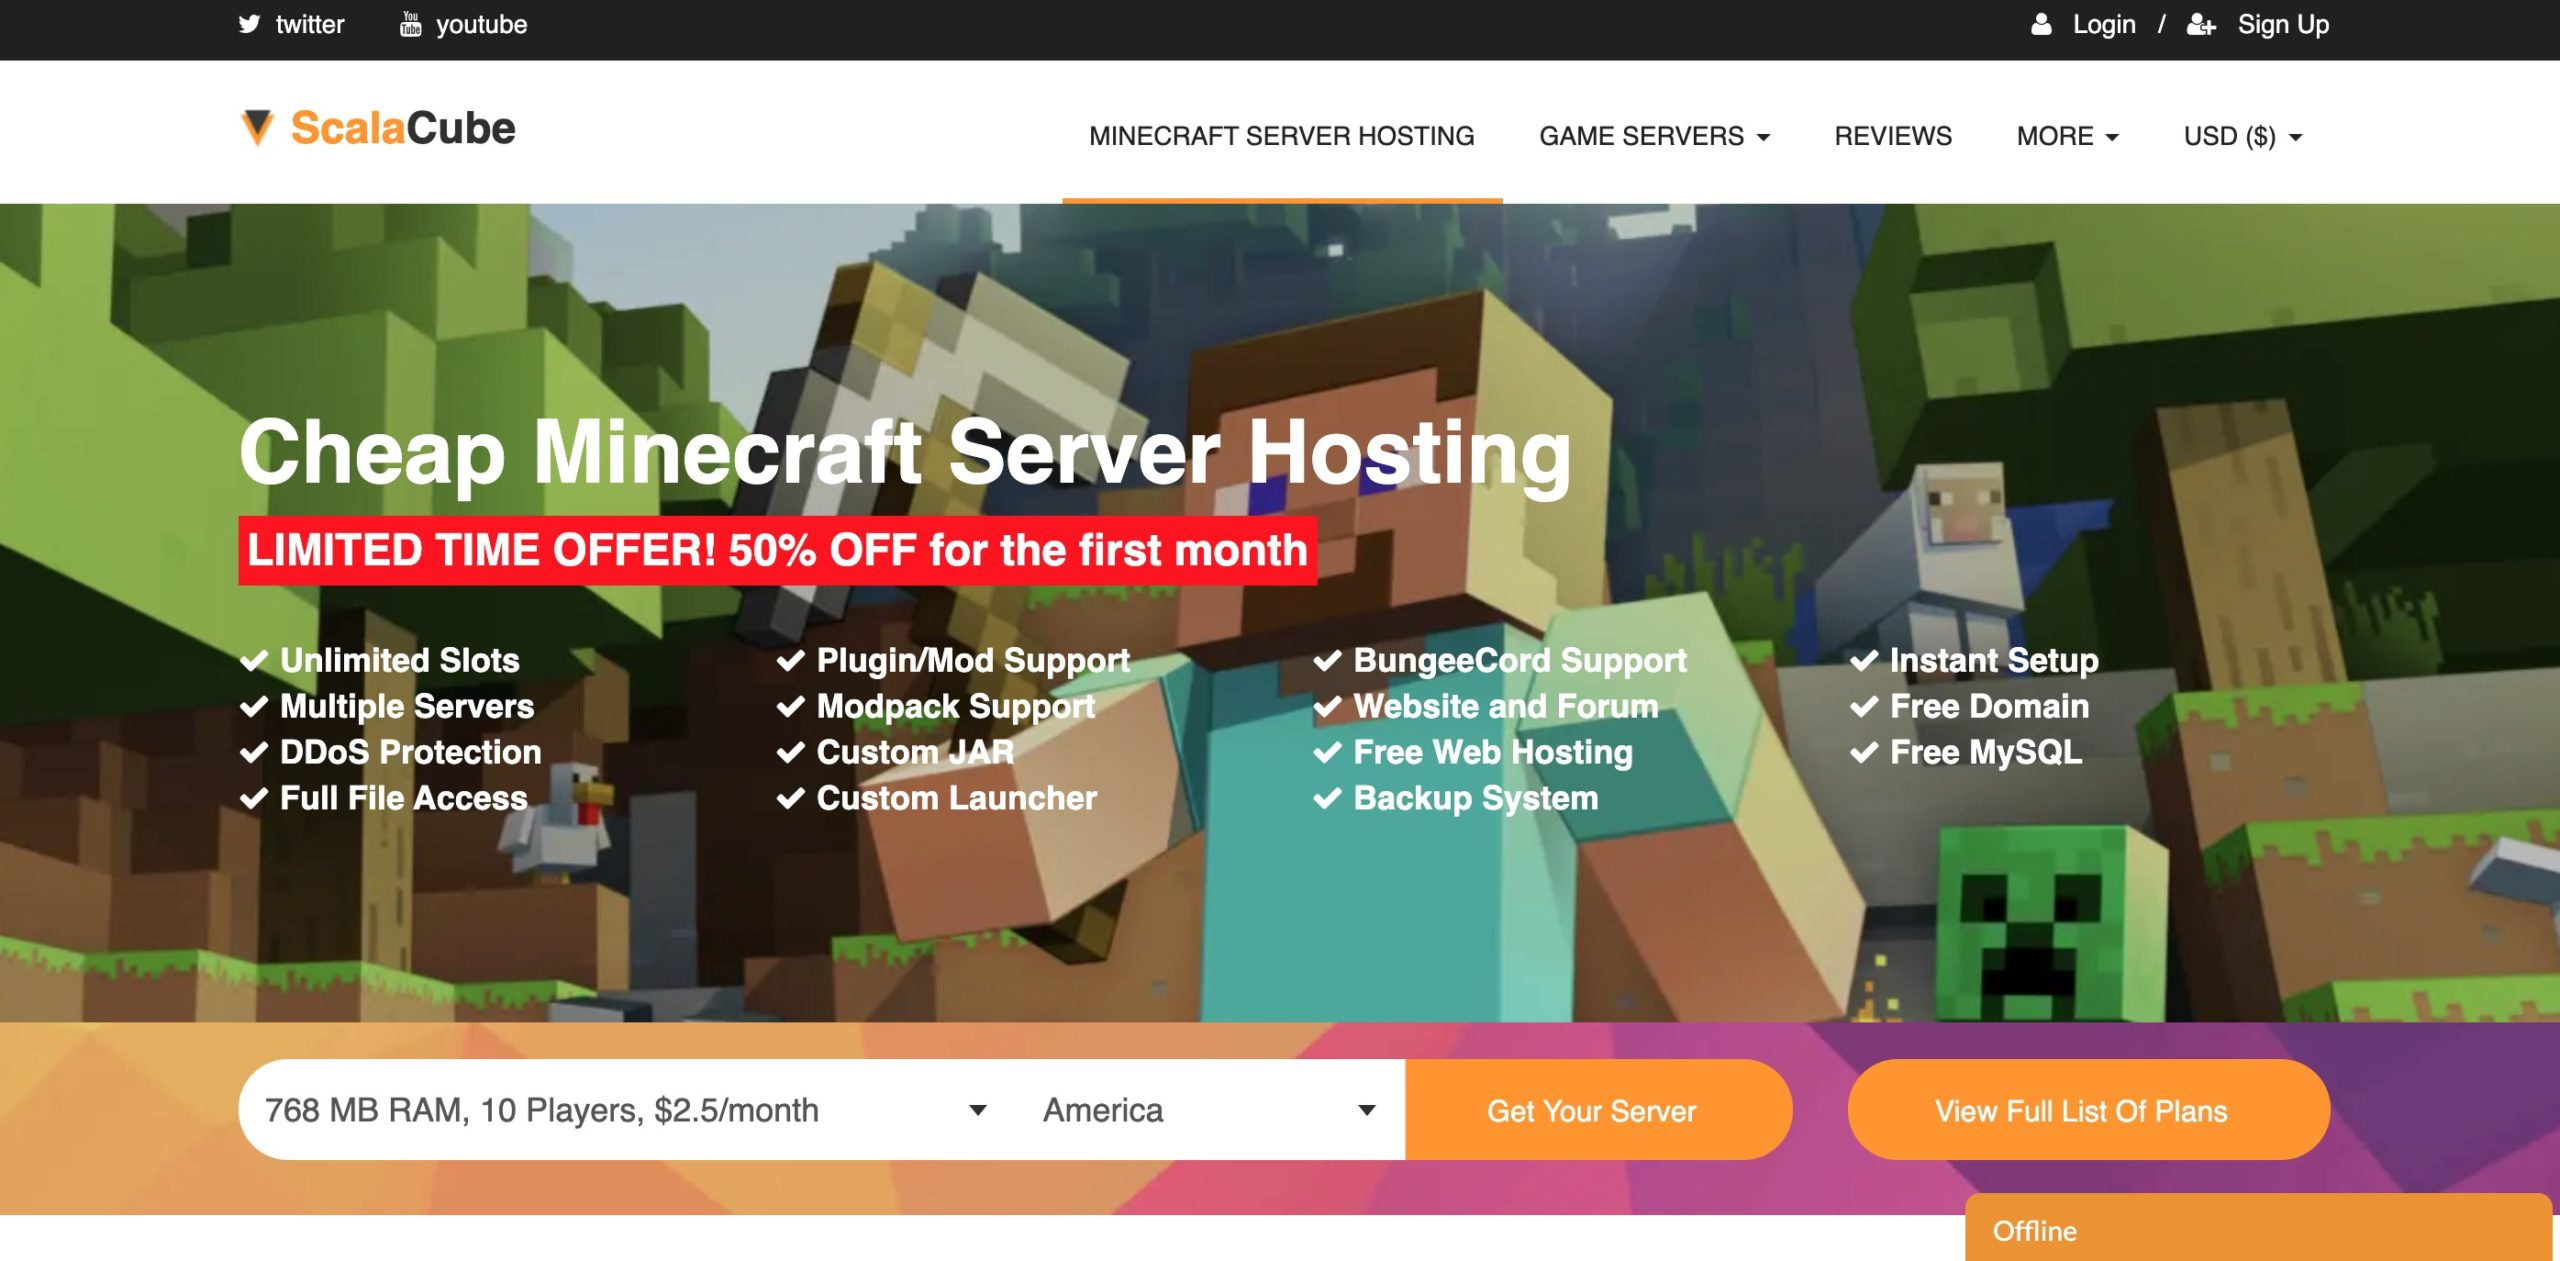 Minecraft server hosting: scalacube